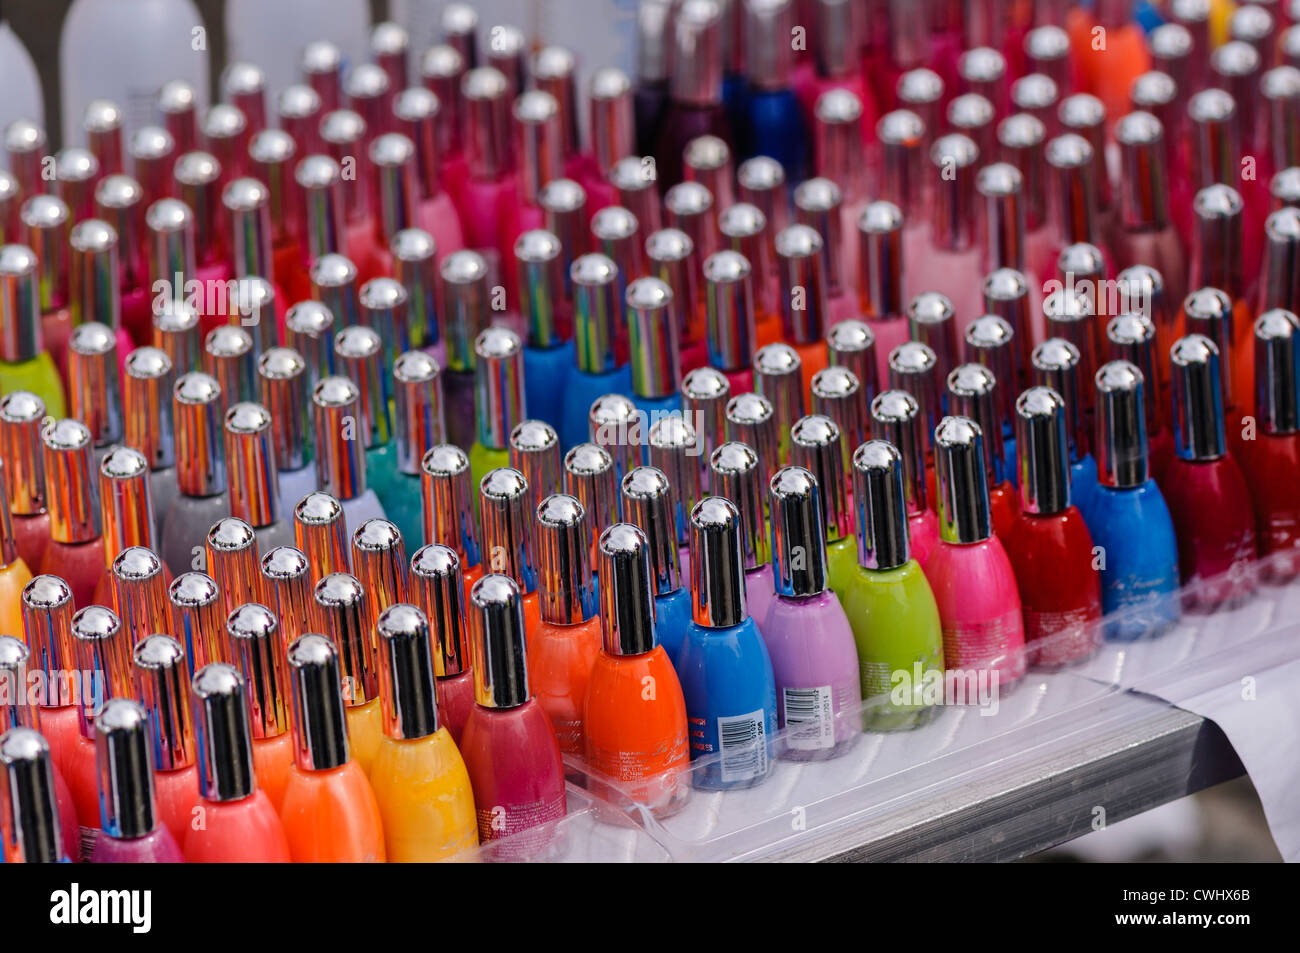 Lots of bottles of nail varnish all different colours Stock Photo ...